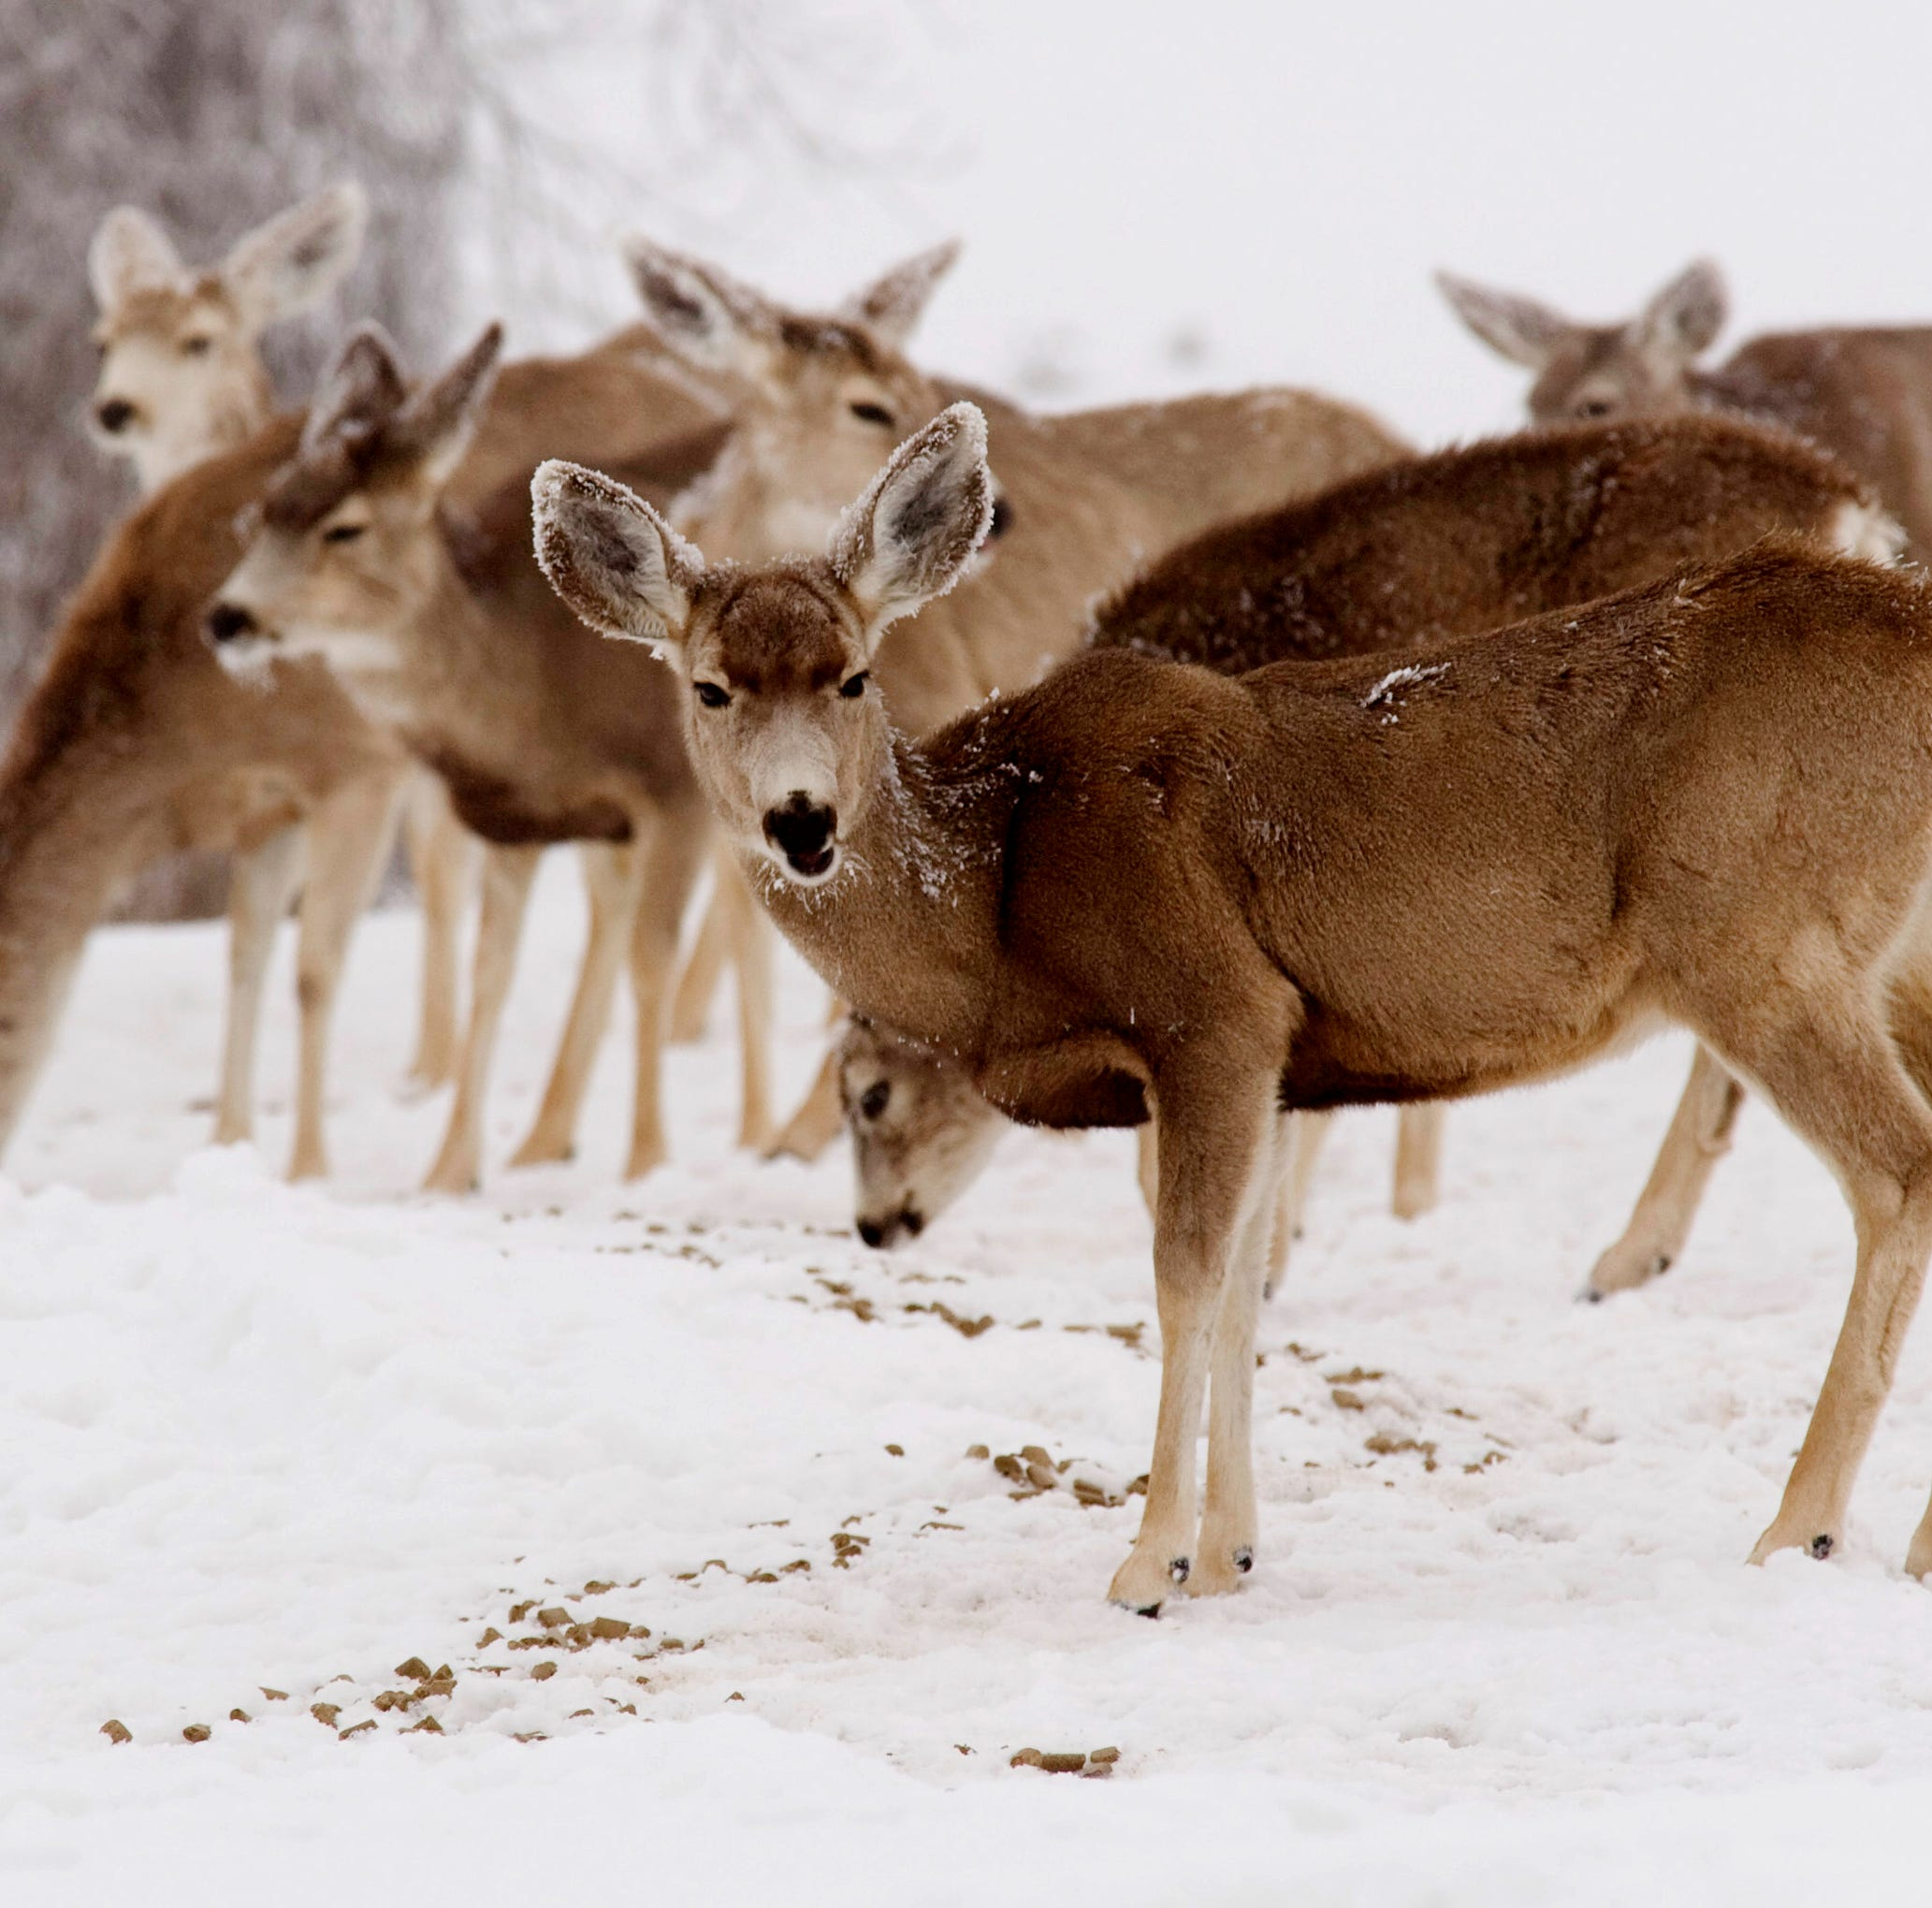 'Zombie' deer disease: Why deer with CWD are actually nothing like zombies